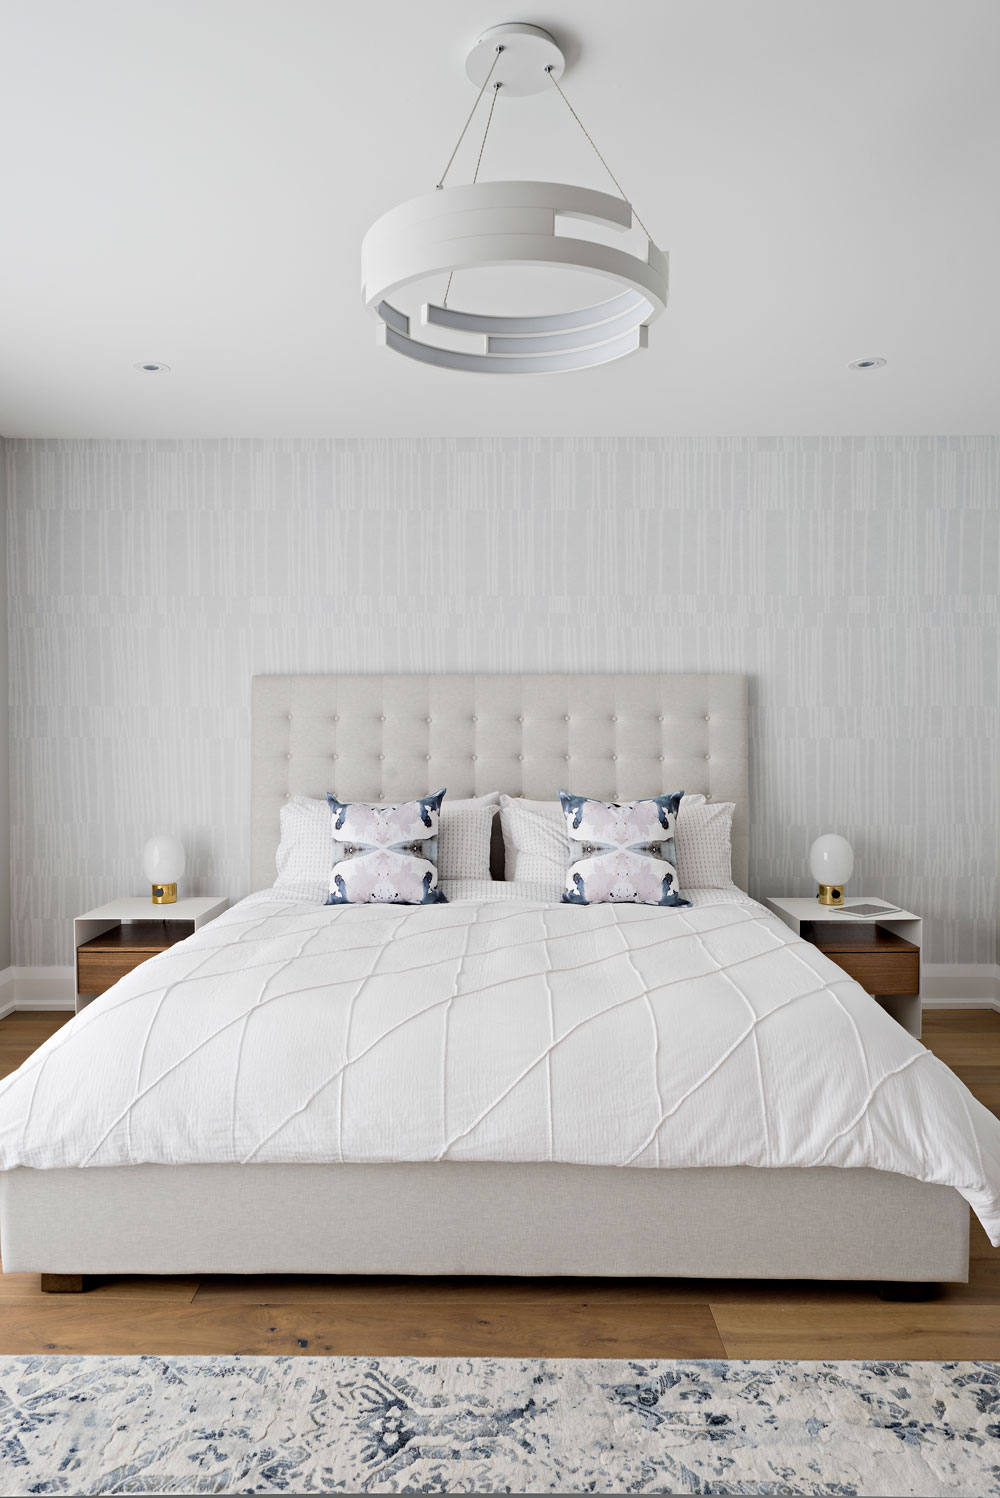 Master bedroom - King bed with headboard